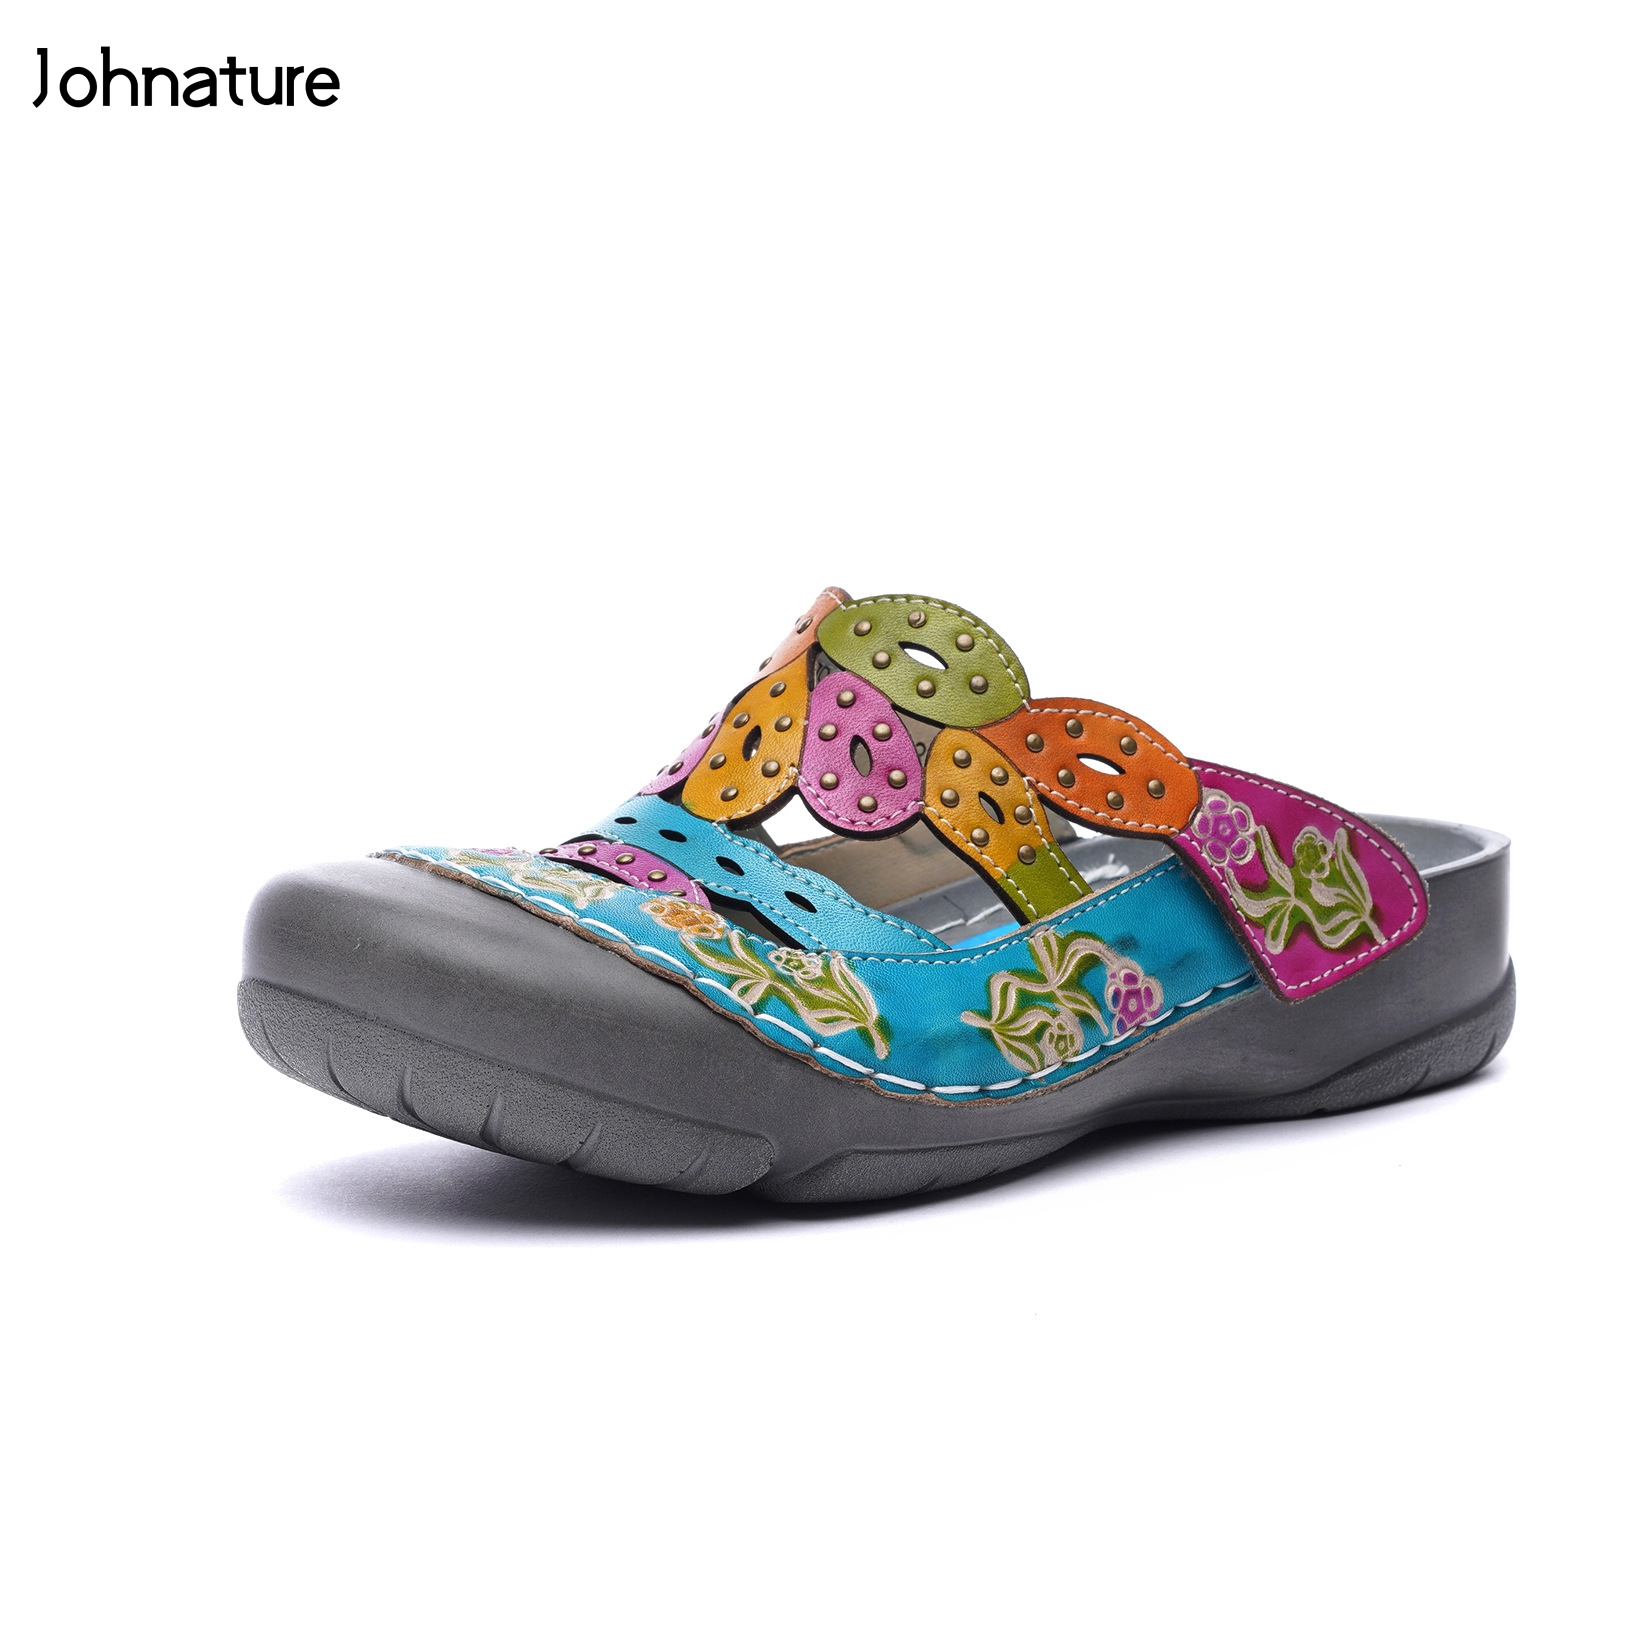 Johnature Genuine Leather 2019 New Summer Slippers Hand-painted Outside Totem Sandal Flat With Slides National Style Women ShoesJohnature Genuine Leather 2019 New Summer Slippers Hand-painted Outside Totem Sandal Flat With Slides National Style Women Shoes